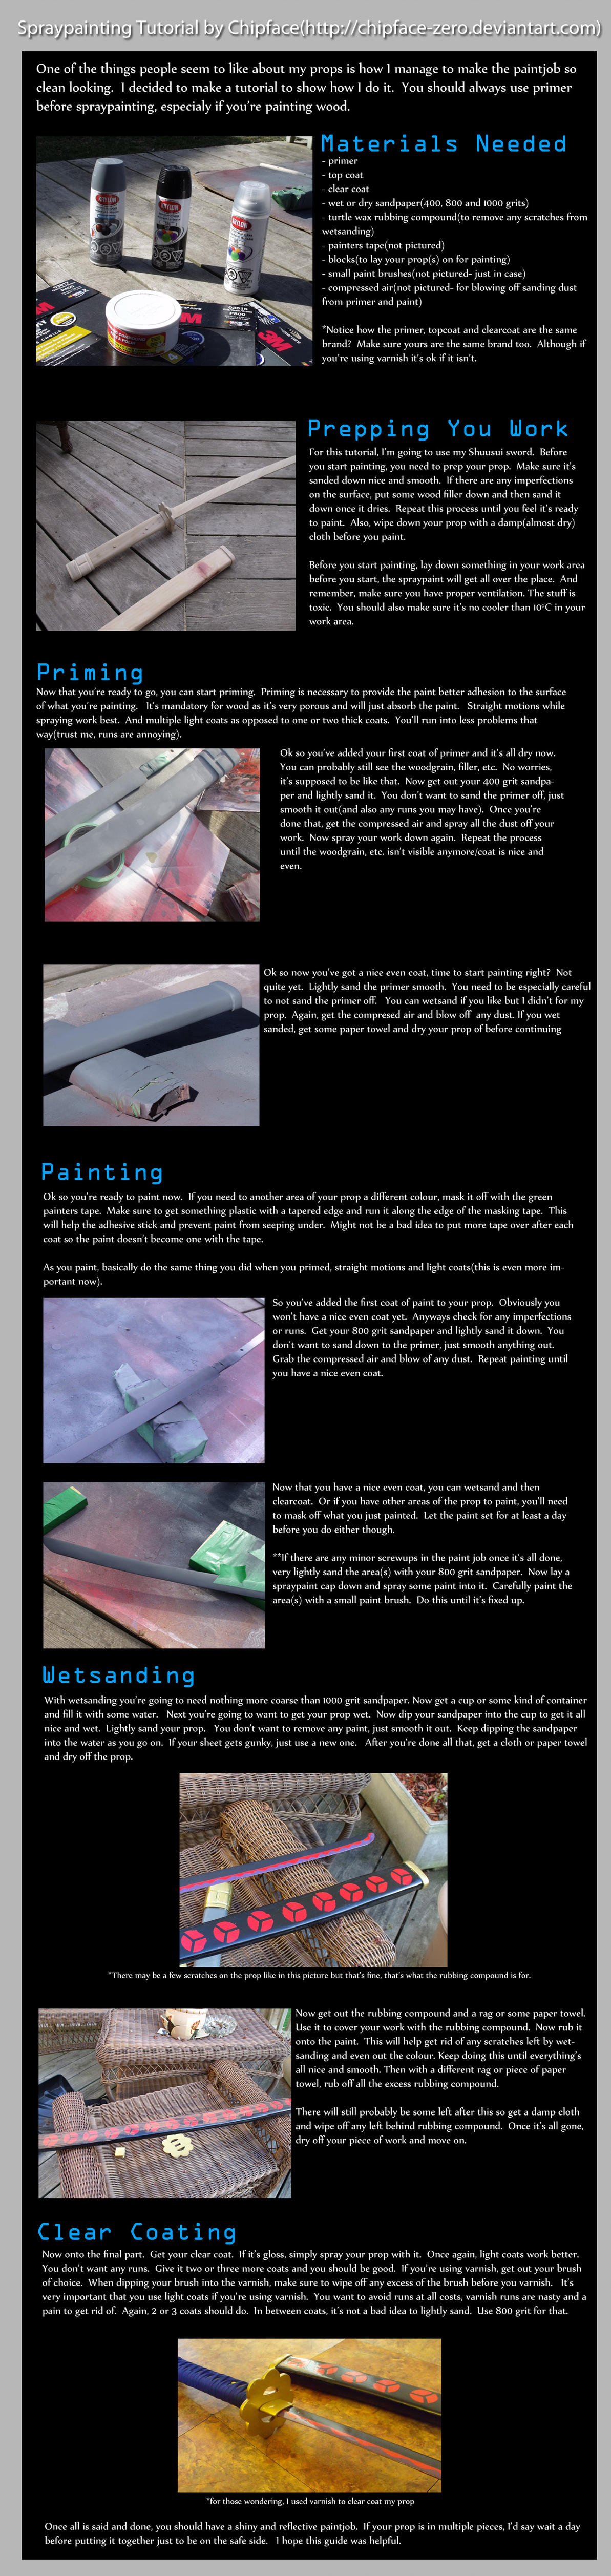 spraypainting tutorial by chipface-zero